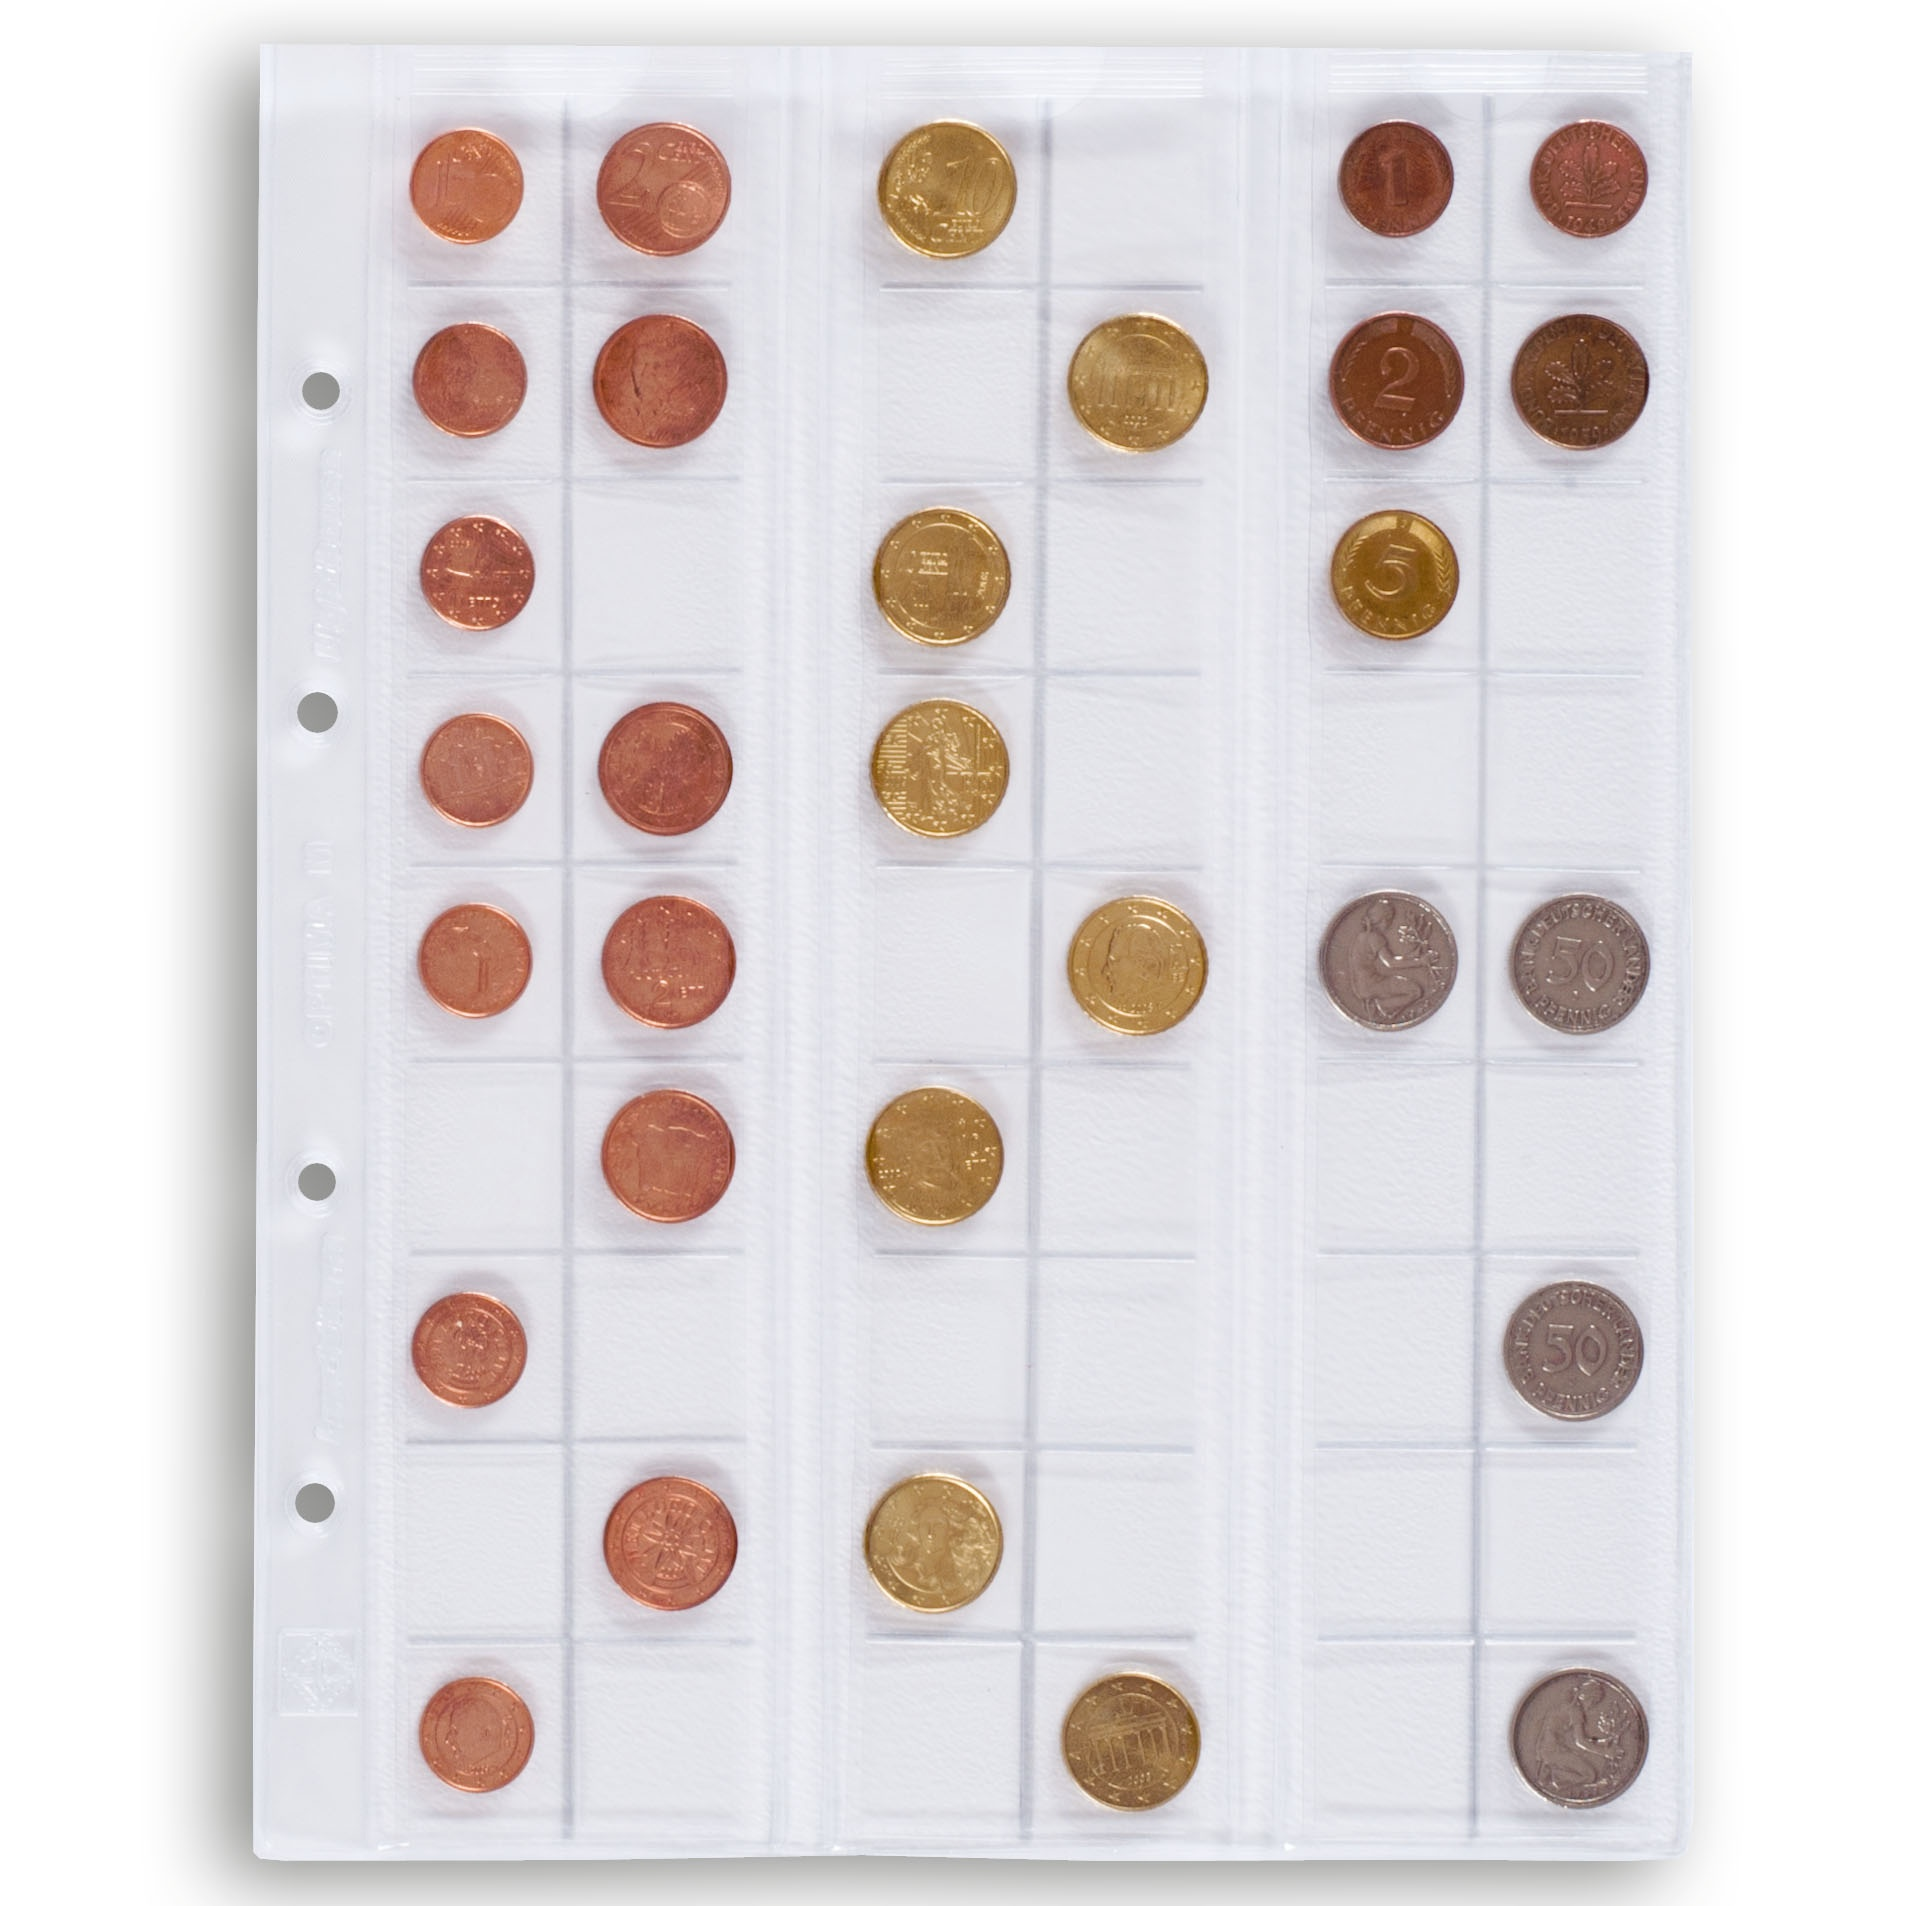 coin-sheets-optima-for-54-coins-up-to-20-mm-o-clear-2